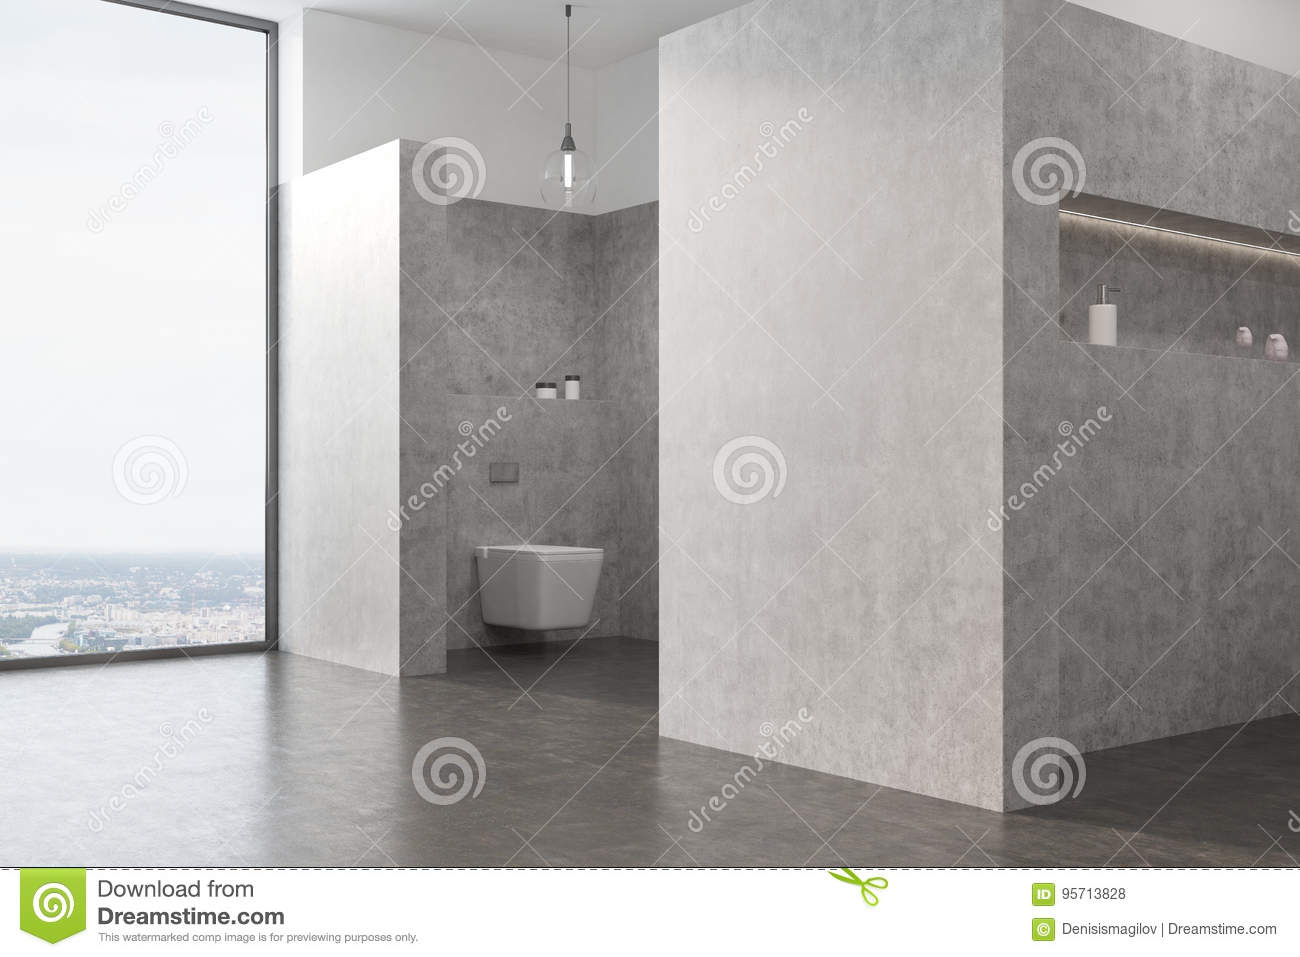 Gray toilet interior with a large window, thick walls with niches in them, a concrete floor and an original lamp. 3d rendering mock up